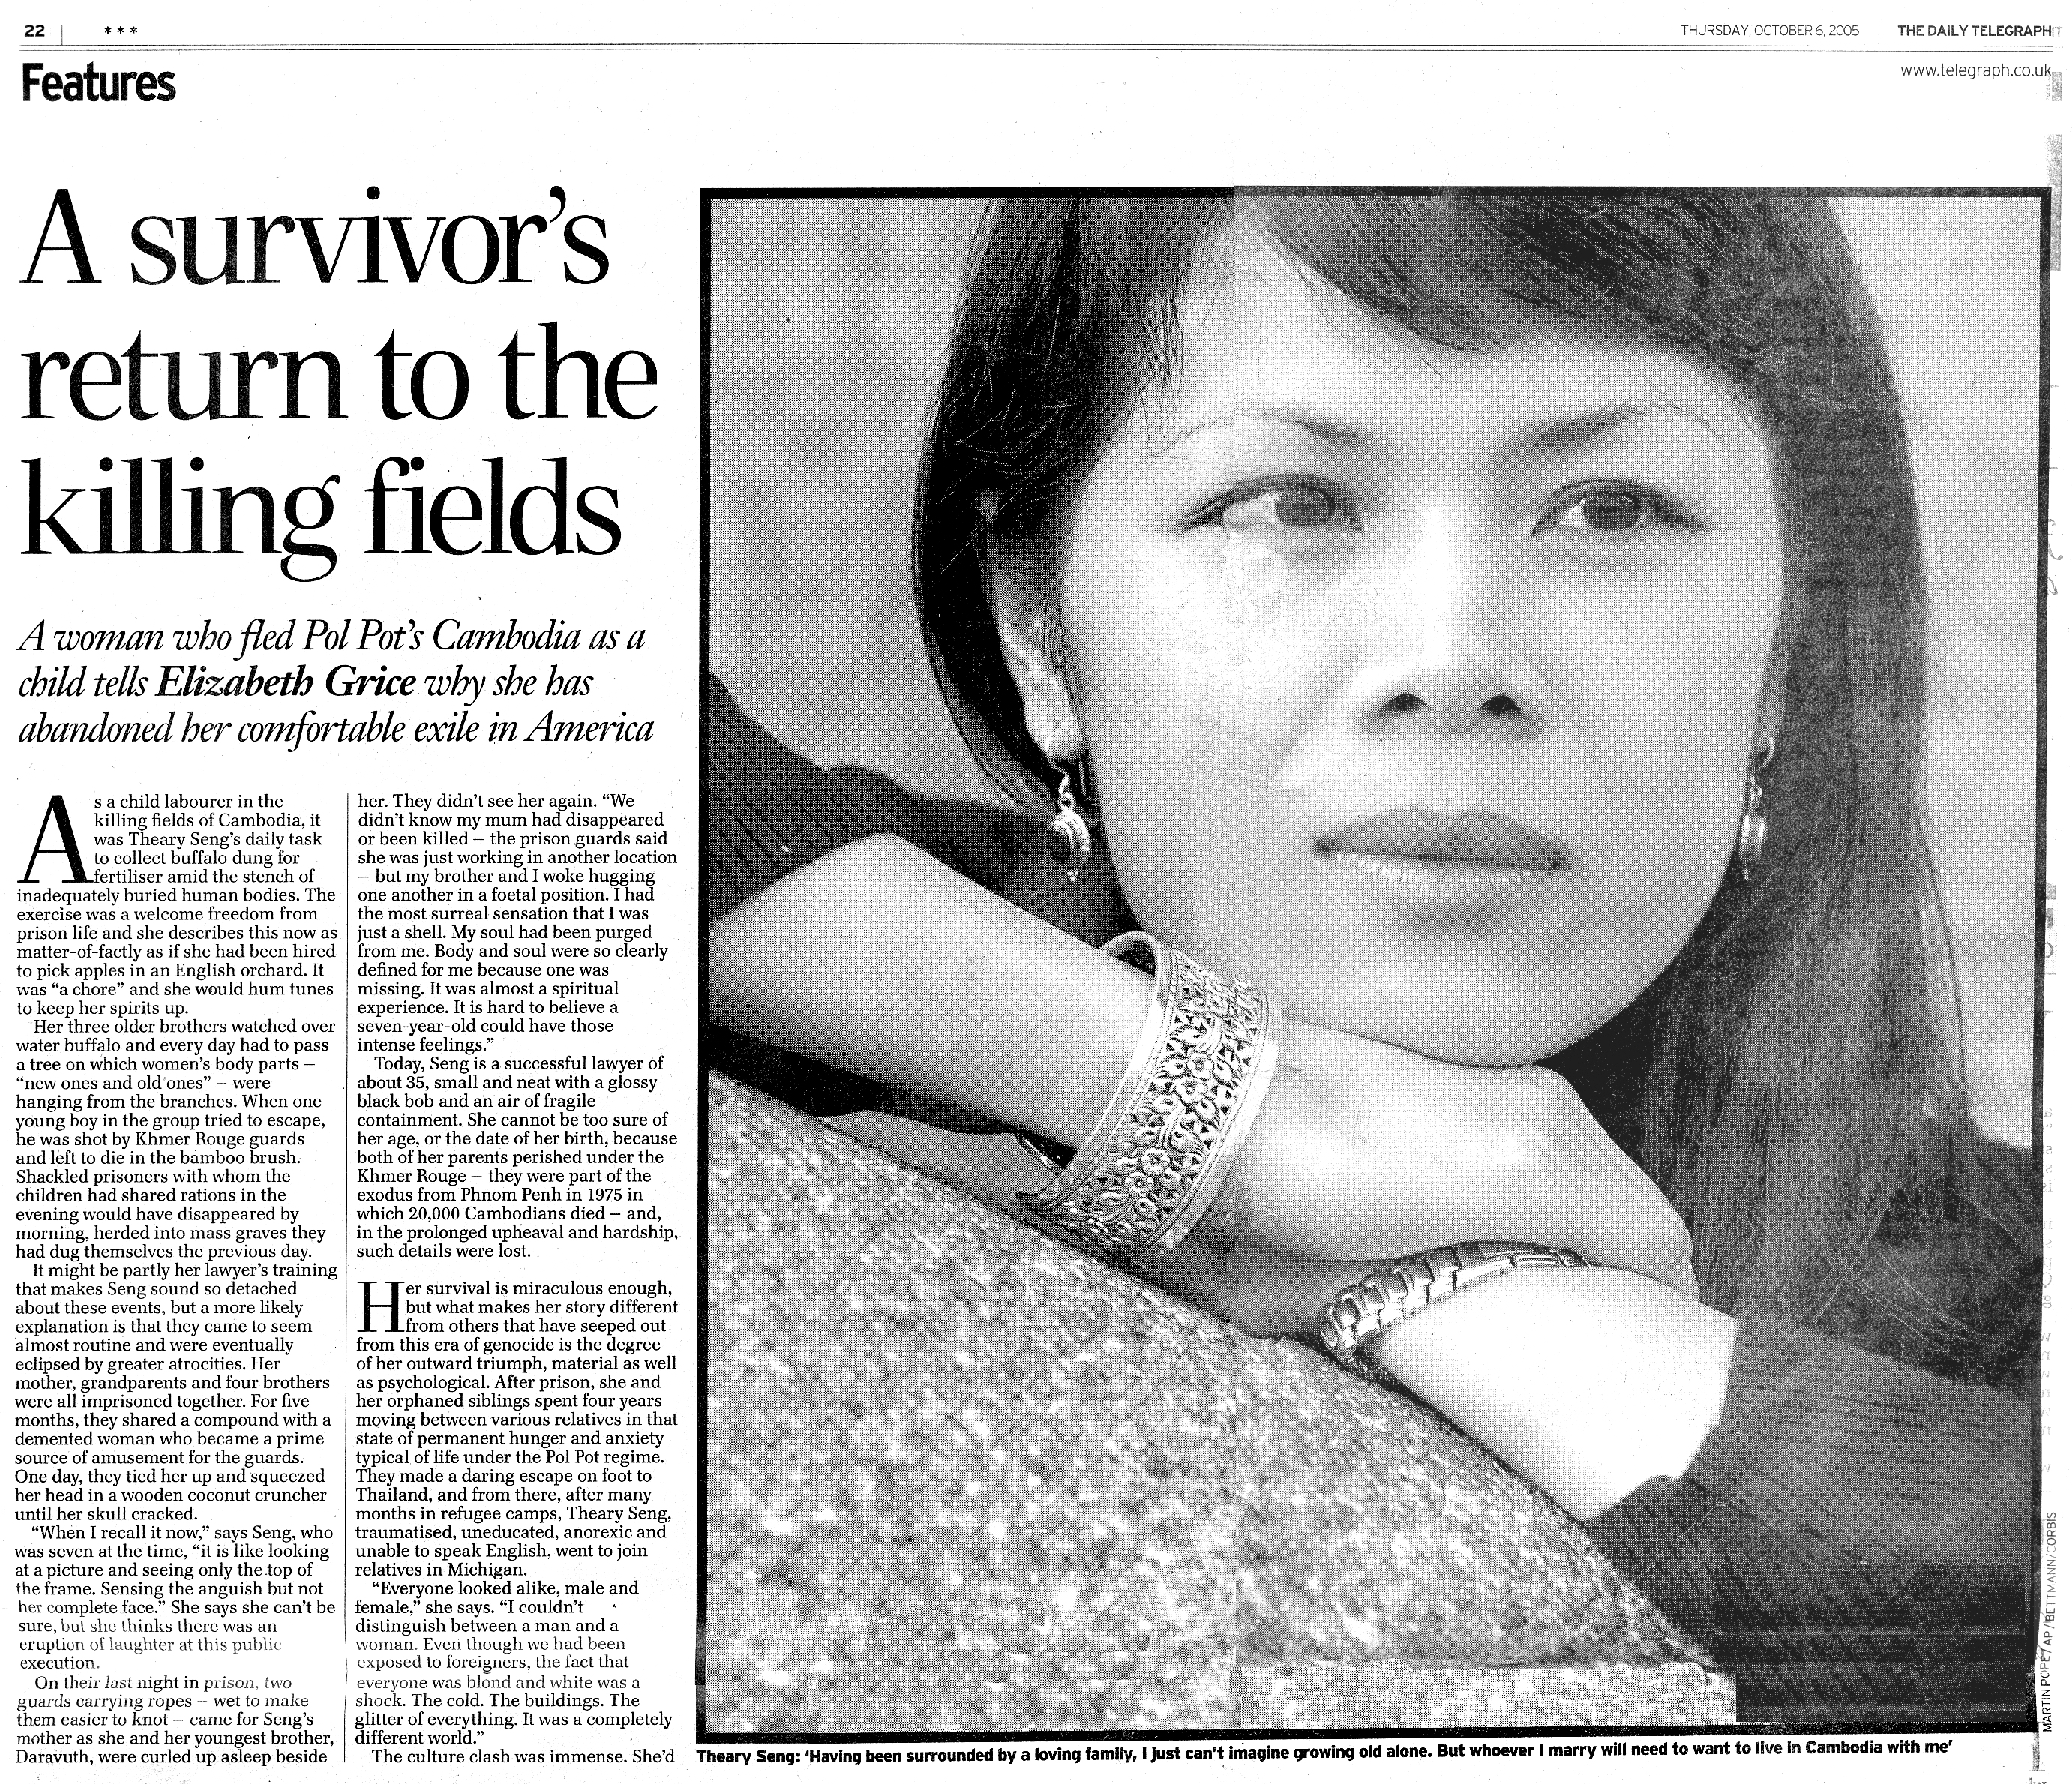 Theary Seng feature interview in UK Daily Telegraph, 2005